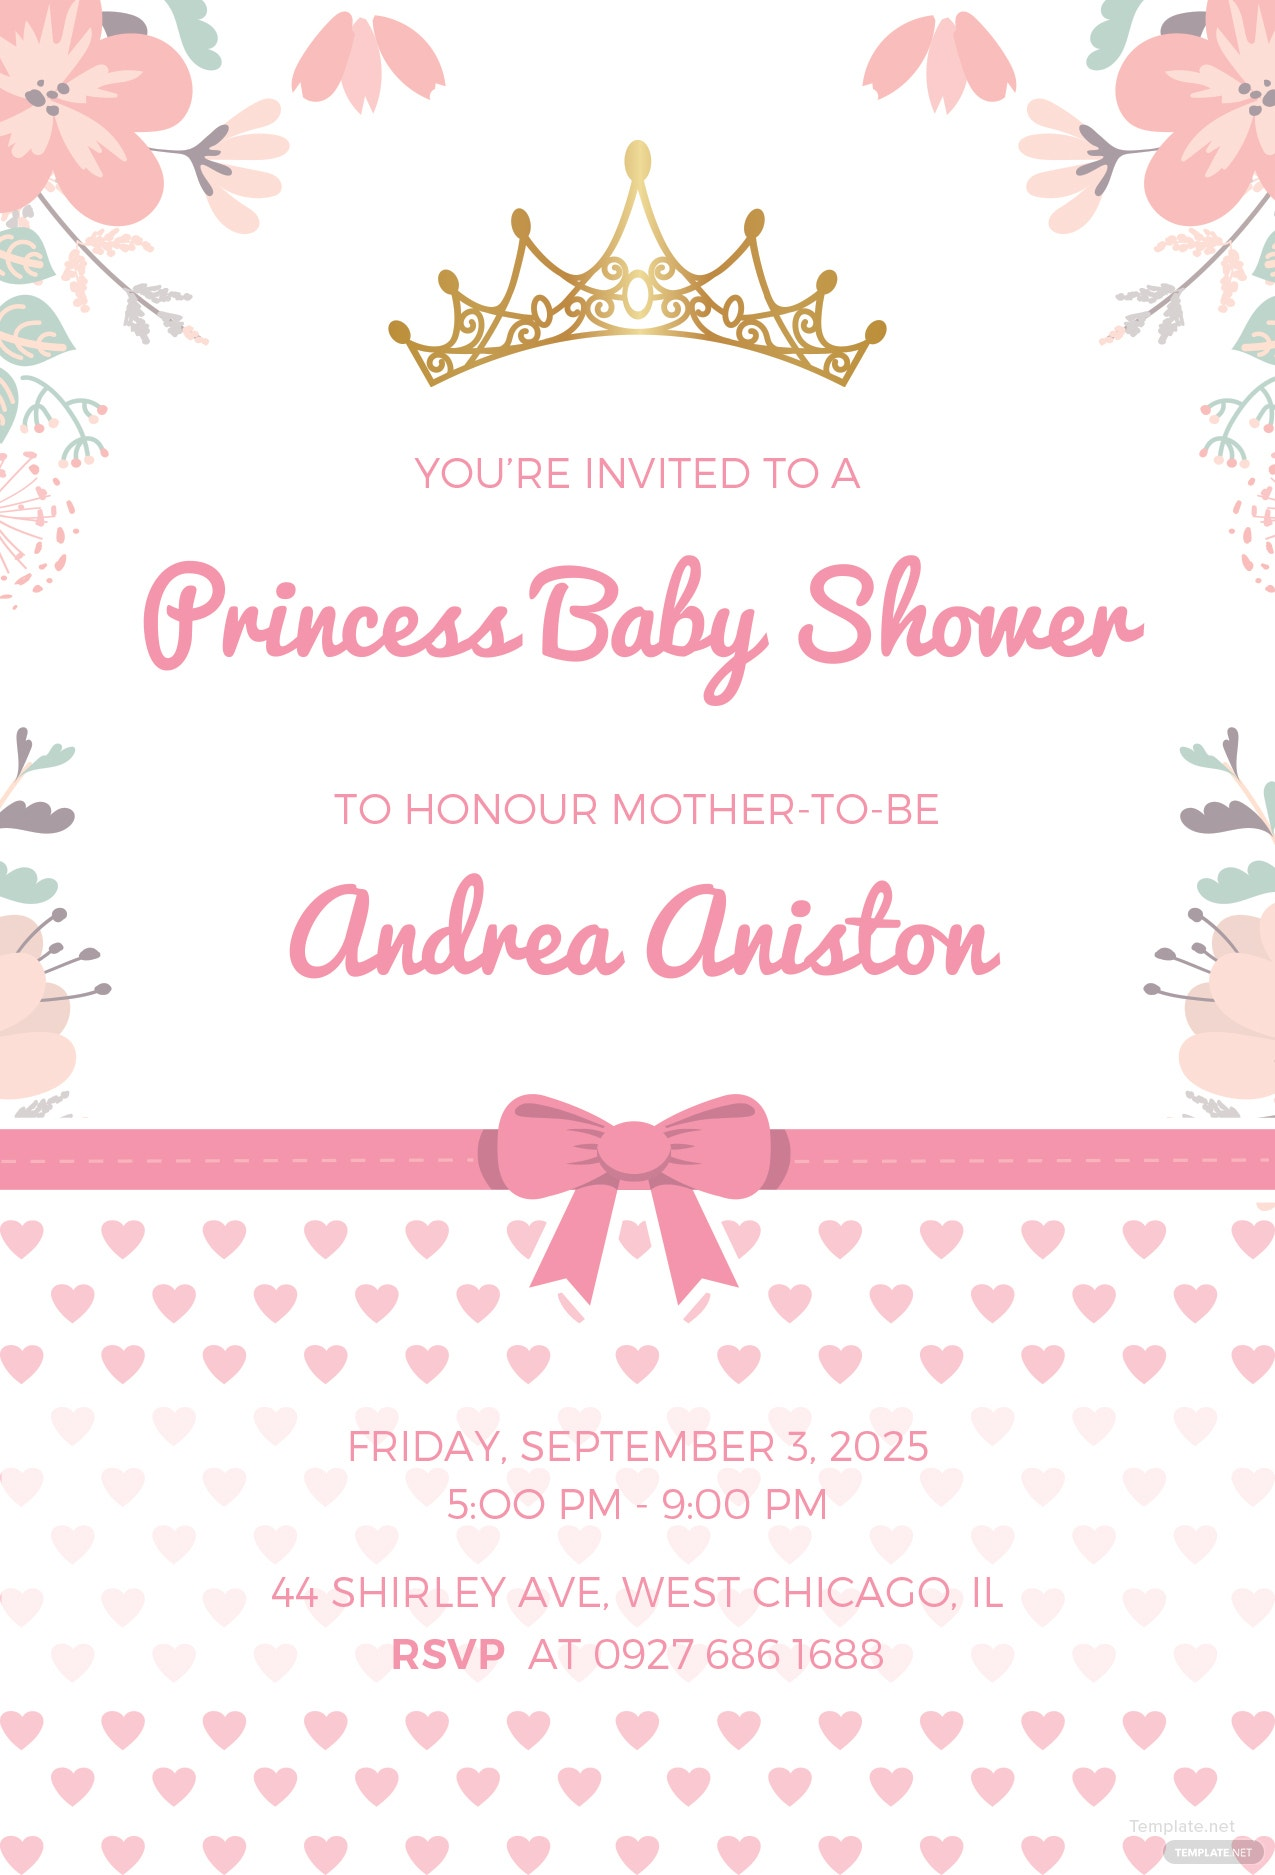 Free princess baby shower invitation template in microsoft word click to see full template princess baby shower invitation template free download filmwisefo